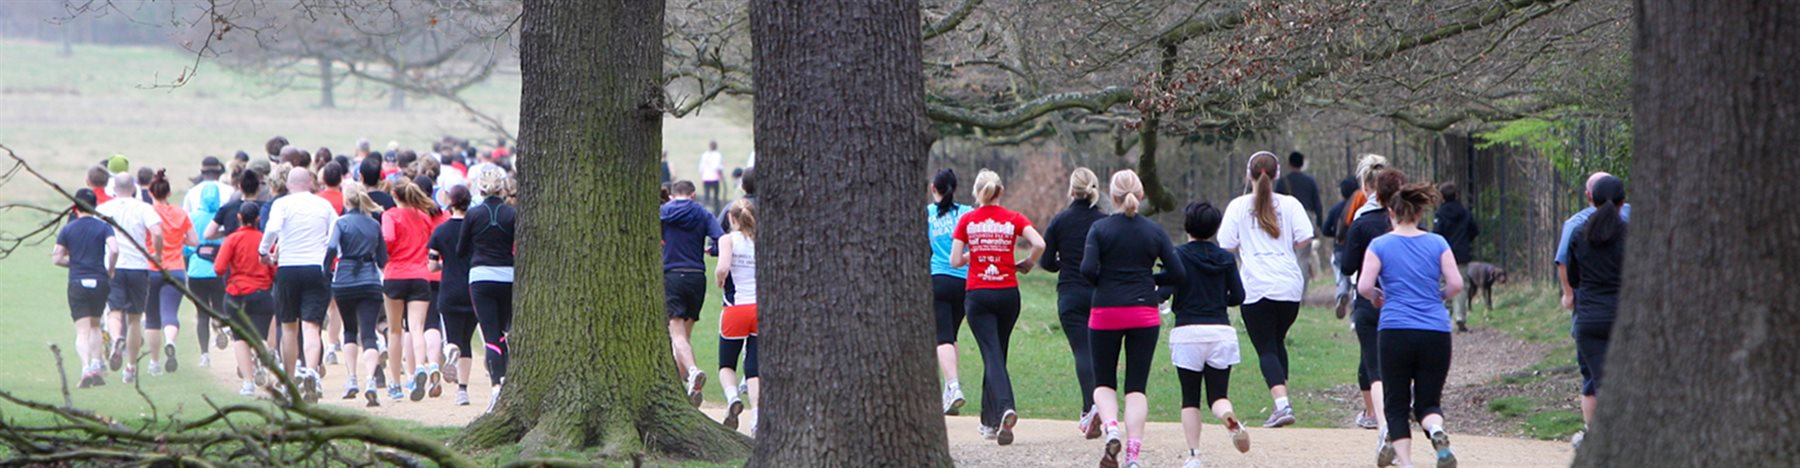 Run Richmond Park 5k & 10k May-18 2019